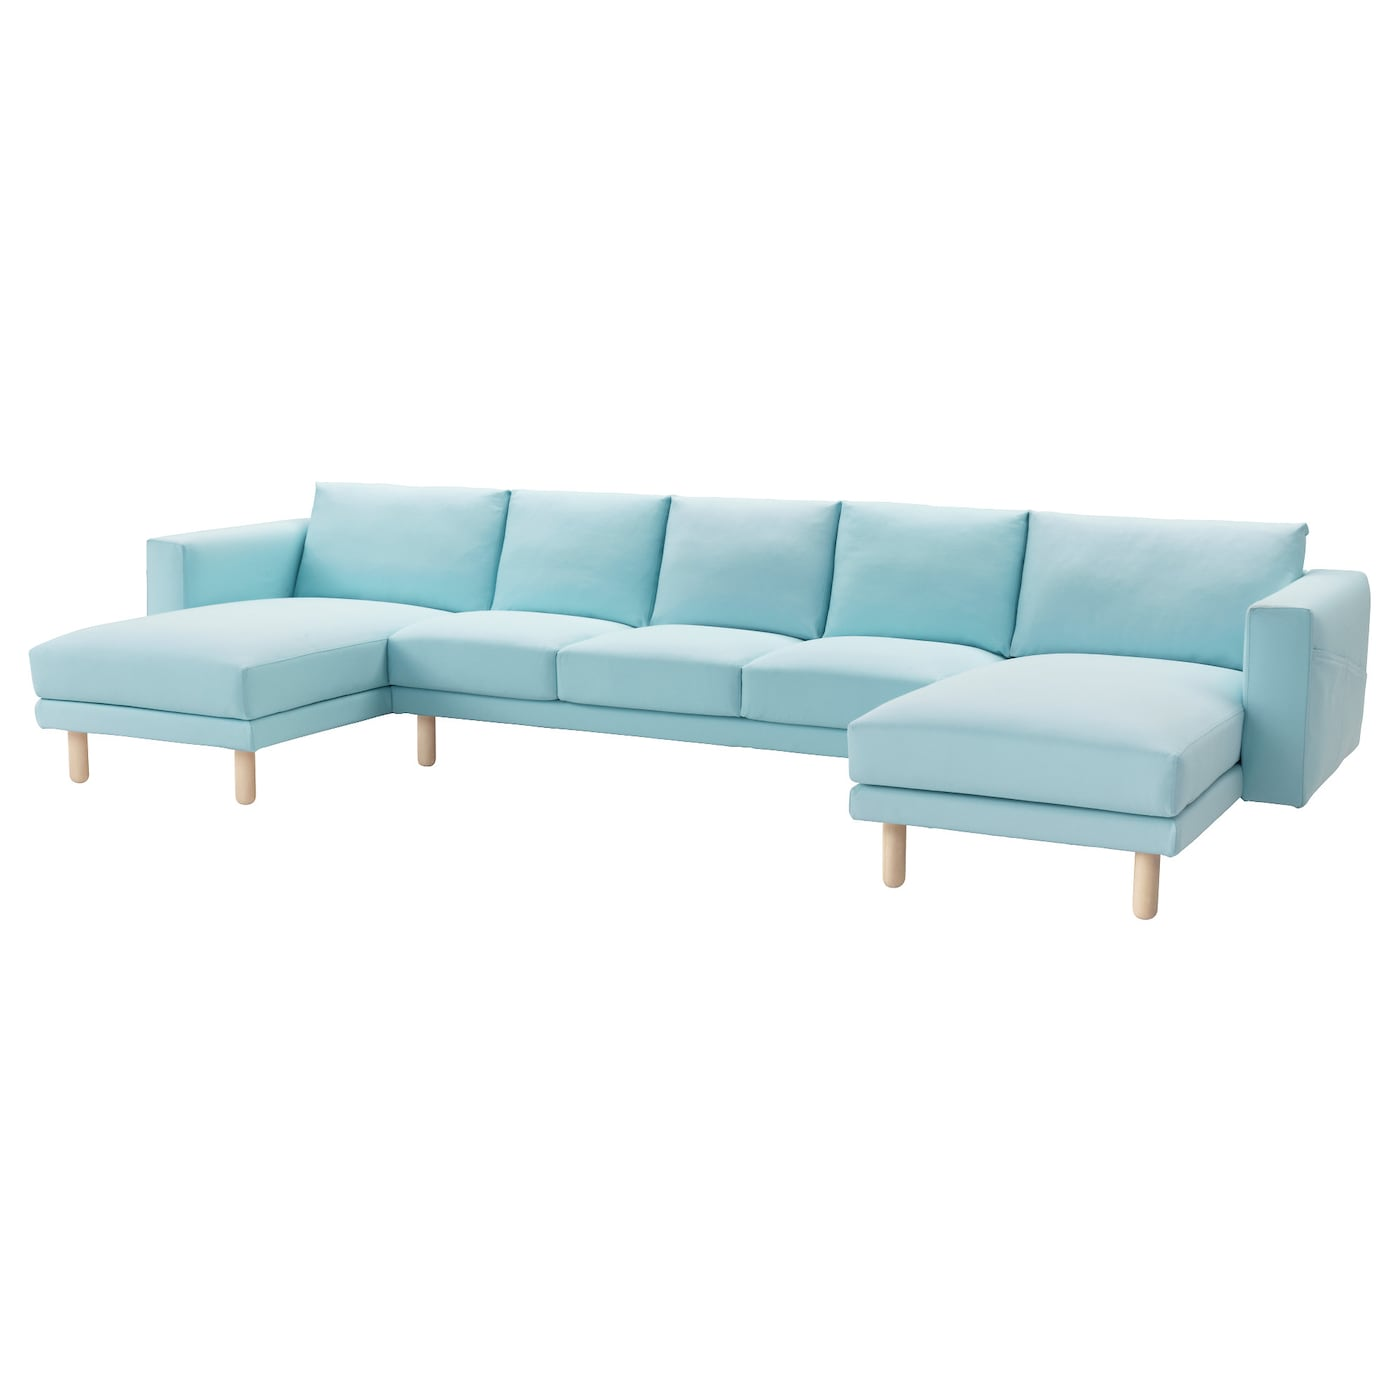 Norsborg 3 seat sofa with 2 chaise longues gr sbo light for 2 5 seater sofa with chaise